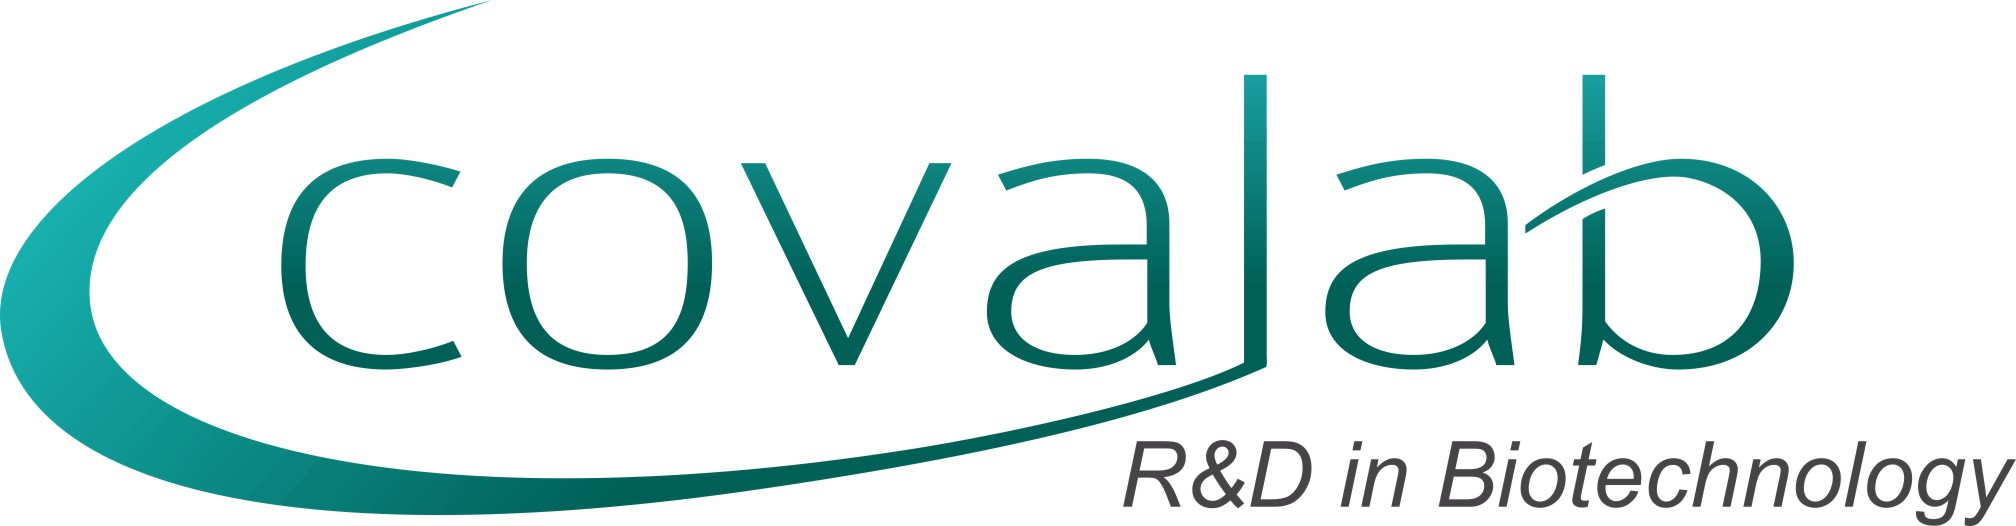 Covalab-RD-2012-vector